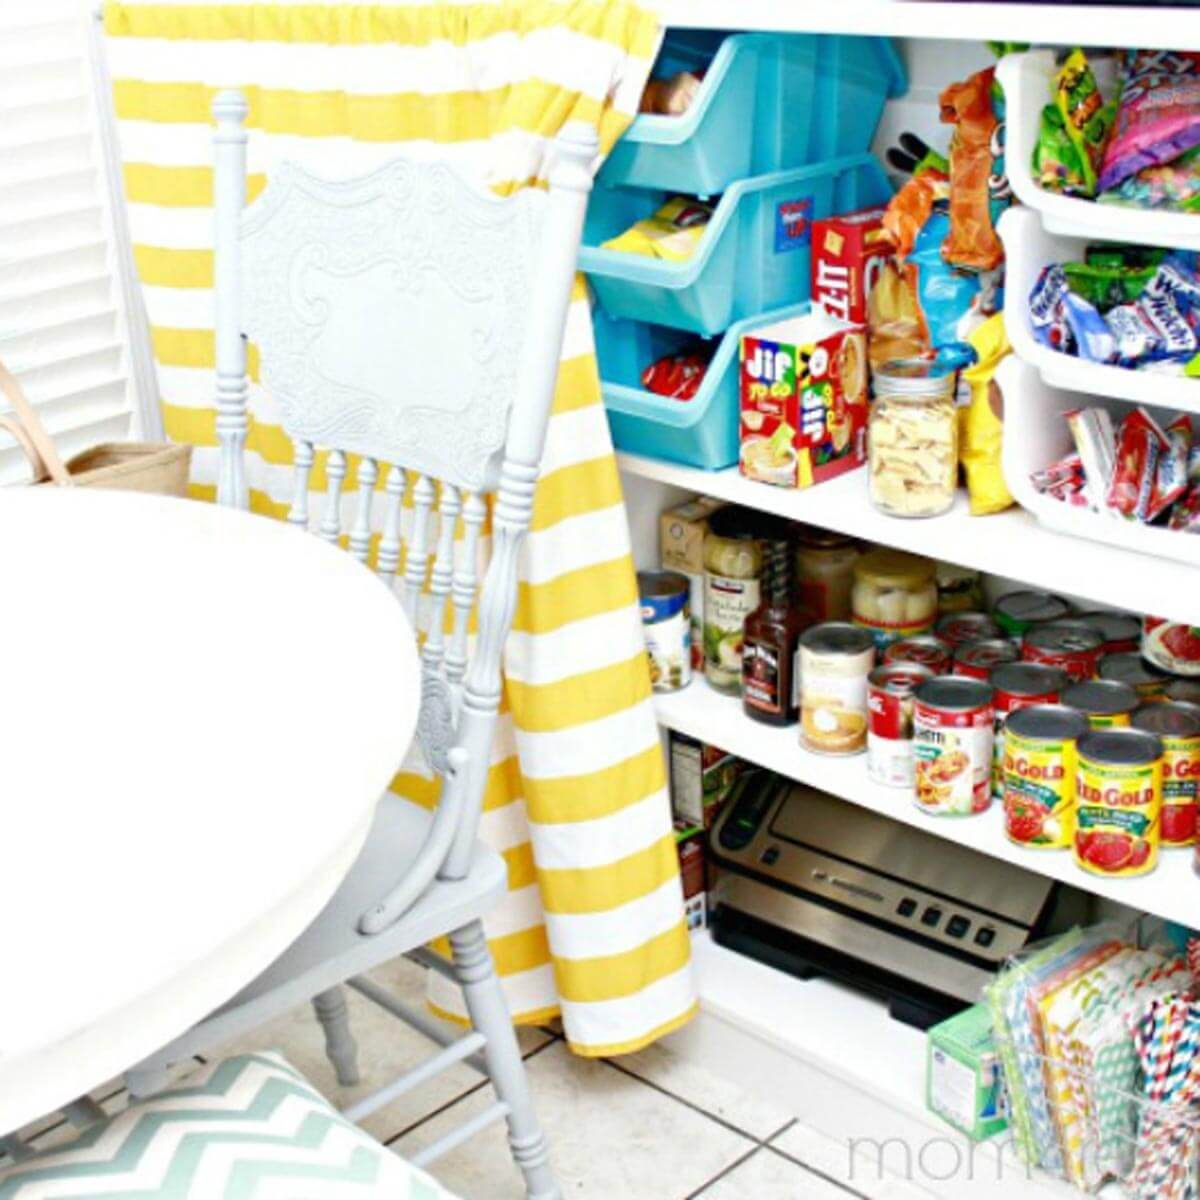 10 Genius Ideas for Building a Pantry — The Family Handyman